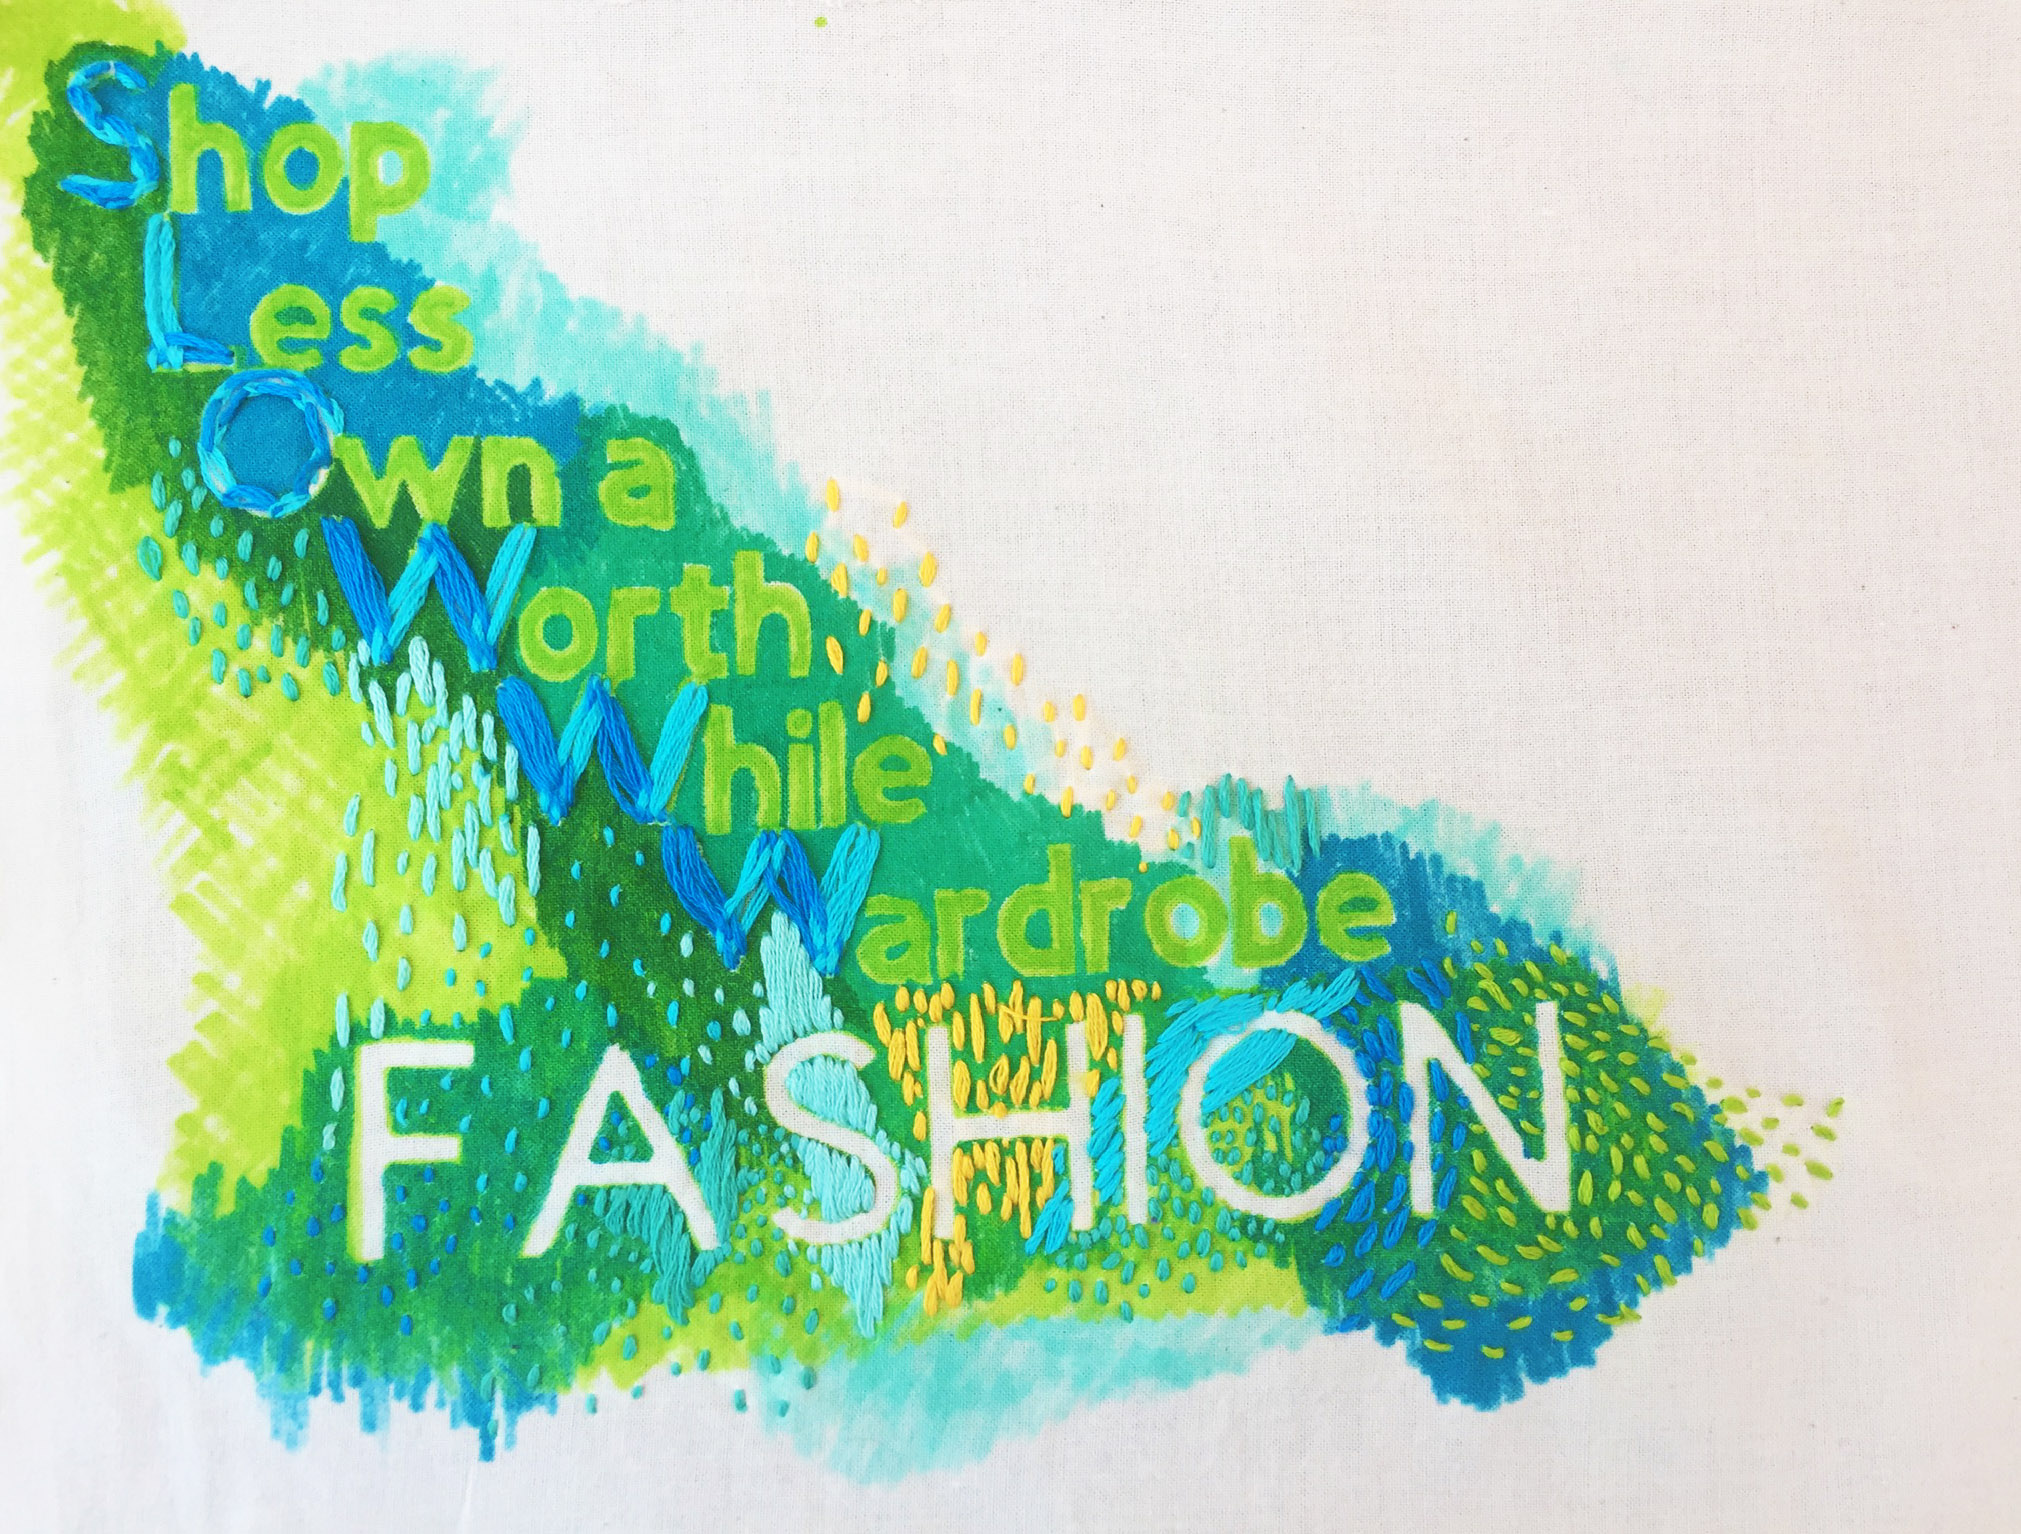 """""""Shop Less Own a WorthWhile Wardrobe"""" embroidered illustration by Alyson Toone"""